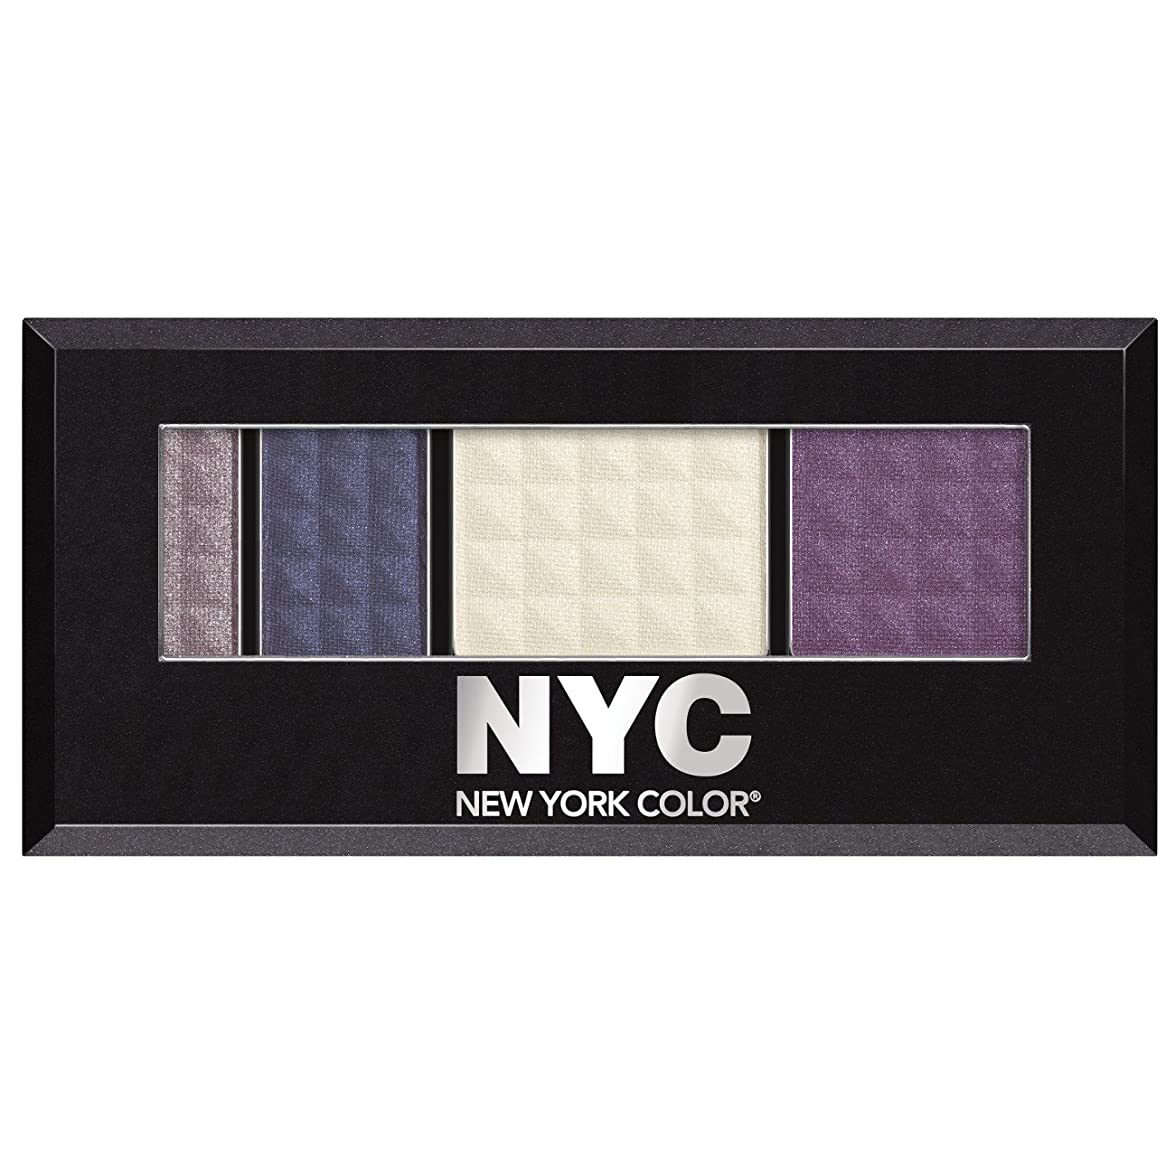 肘掛け椅子繊維懲らしめNew York Color Eye Shadow, Metro Quartet, Queens Boulevard 796 0.12 oz (3.4 g) by NYC